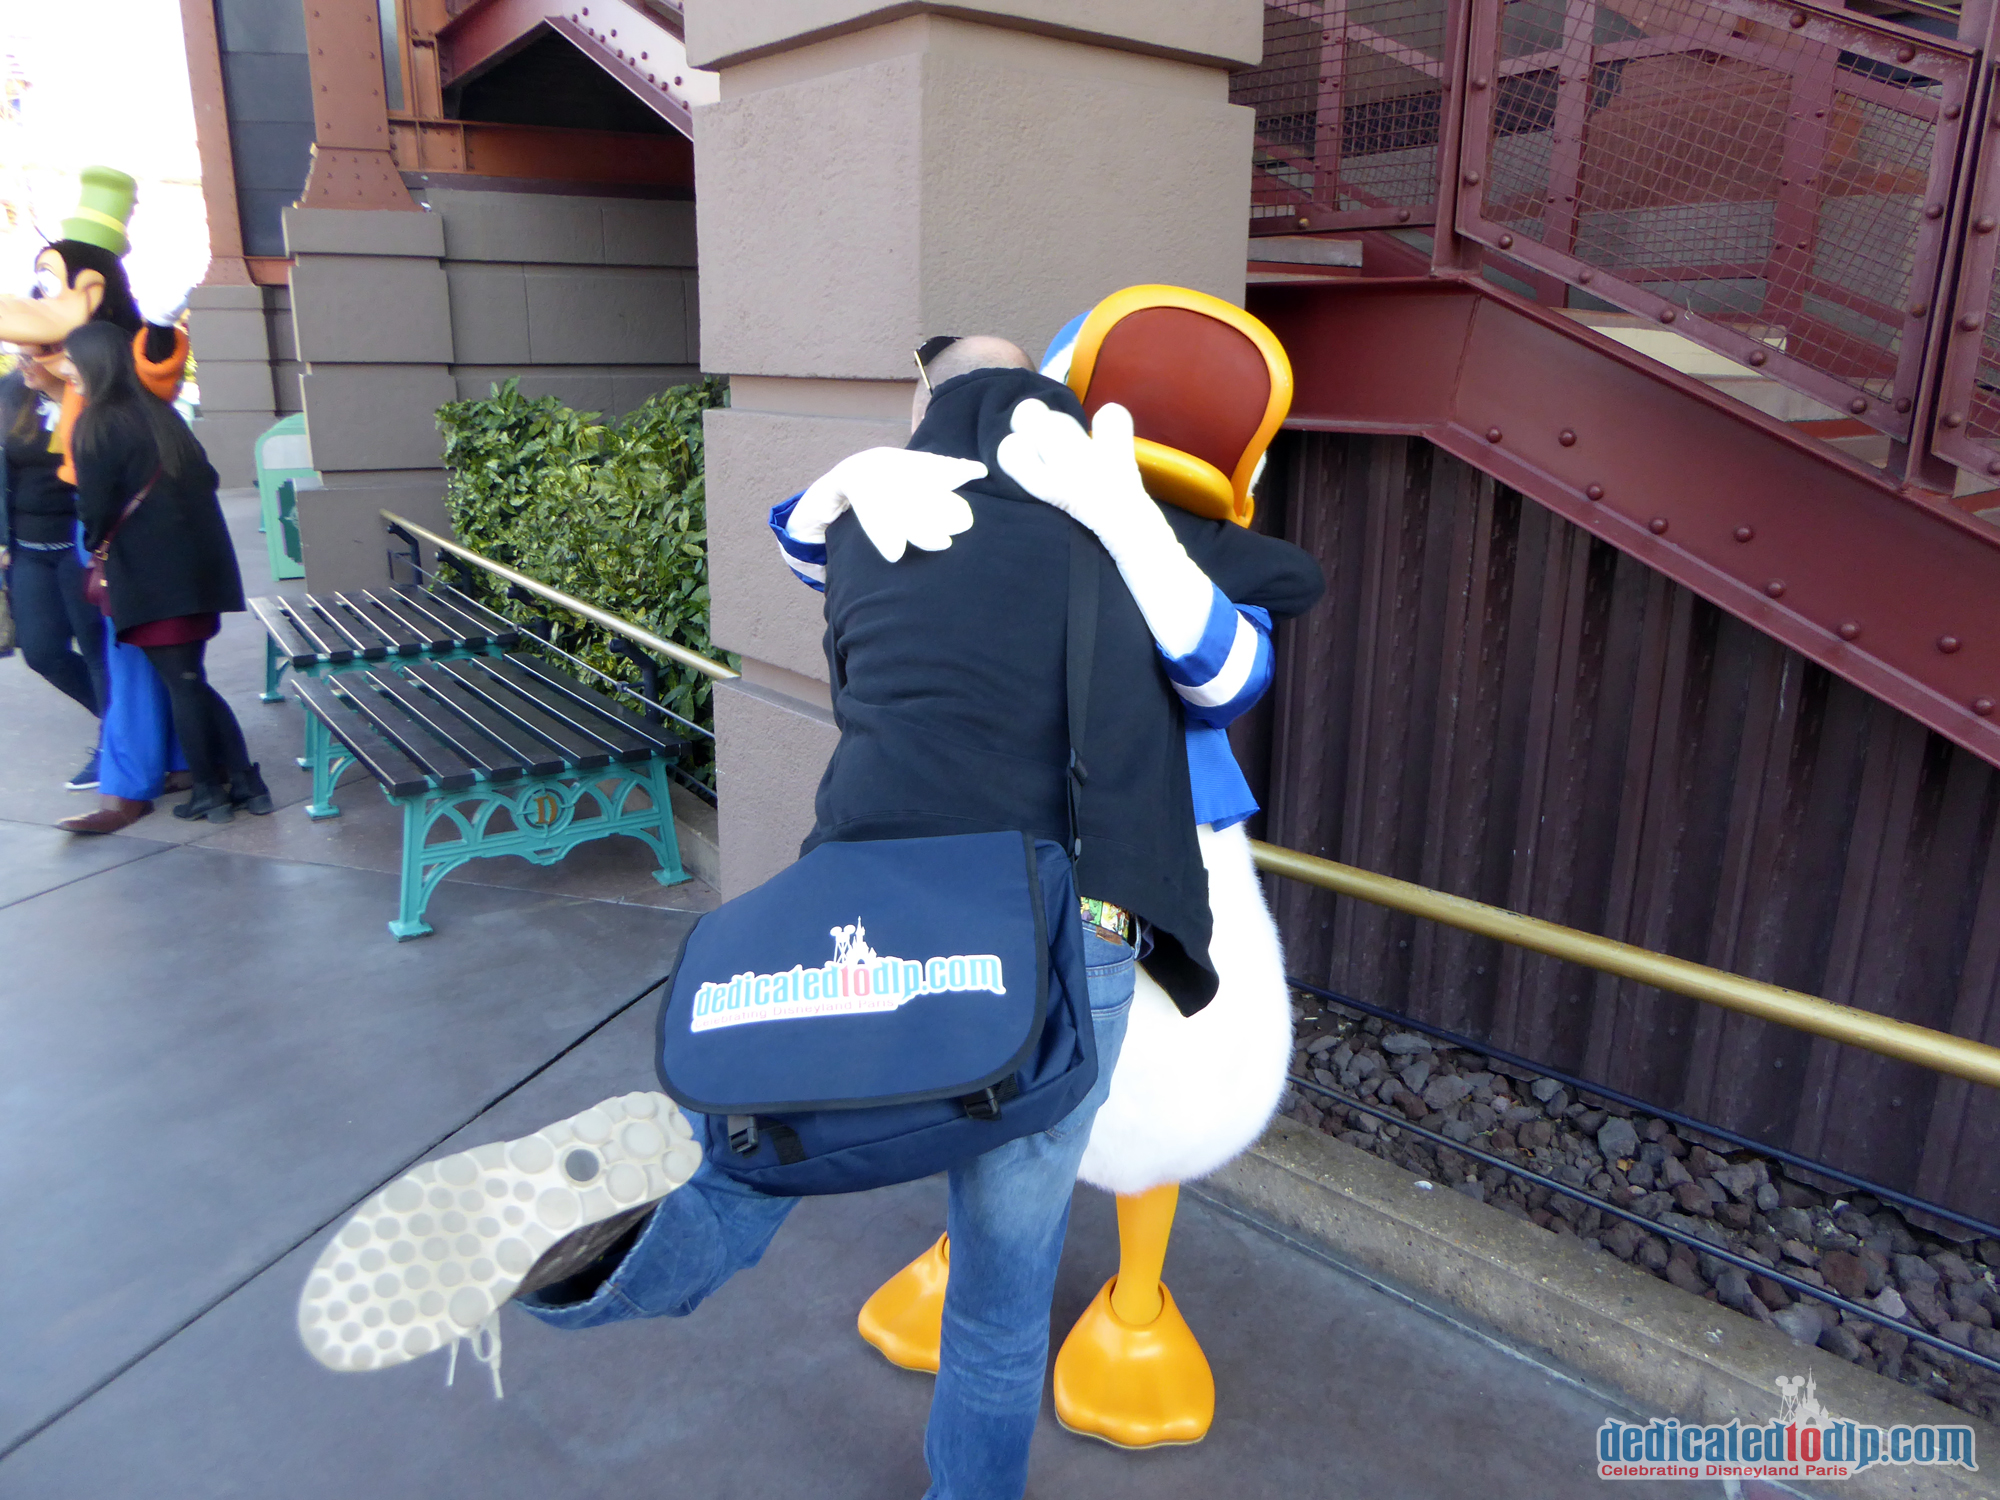 Dedicated to dlp celebrating disneyland paris a disneyland paris huge with donald duck in disneyland paris m4hsunfo